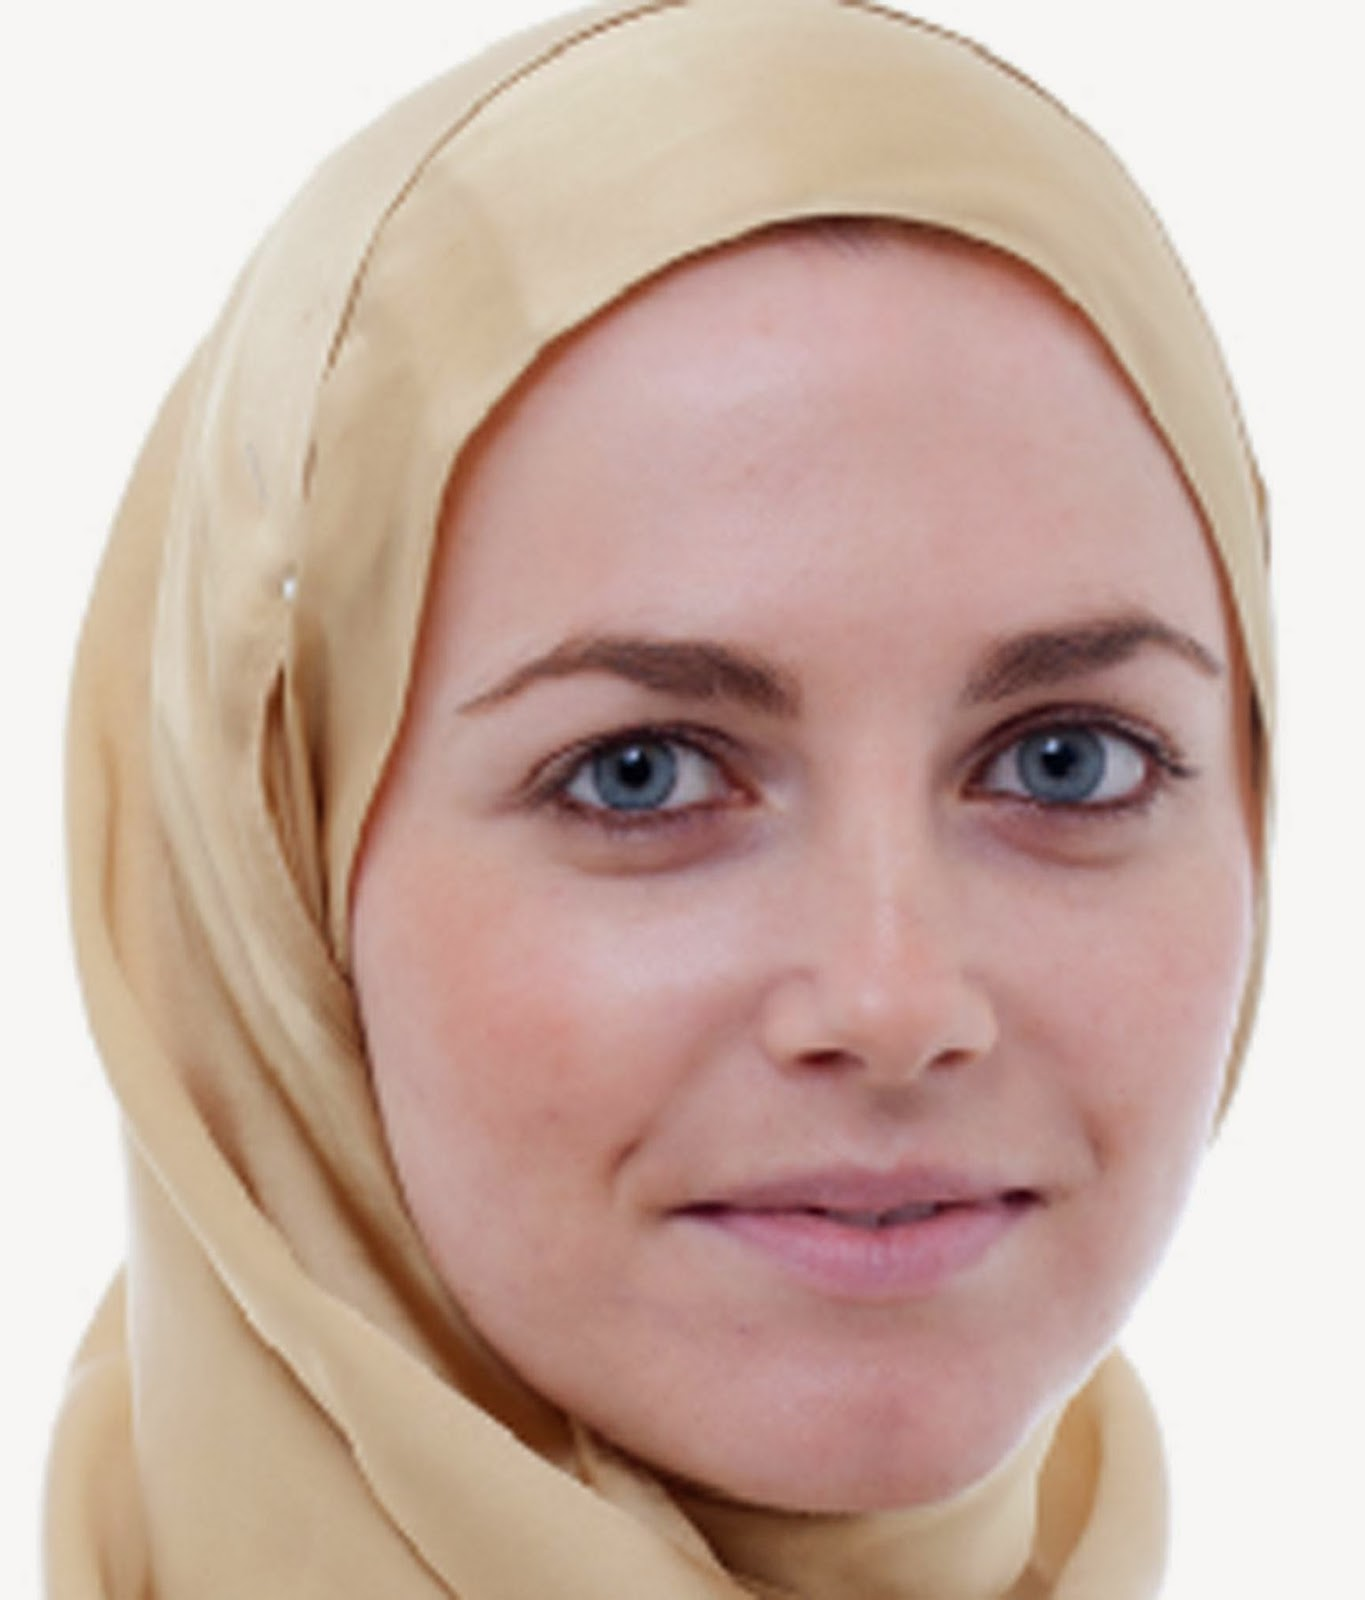 muslim single women in athelstane Dating in crivitz (wi) if you are looking for singles in crivitz, wi you may  dating in coleman (wi) dating in athelstane (wi) dating in wausaukee (wi) dating in  crivitz dads dating.